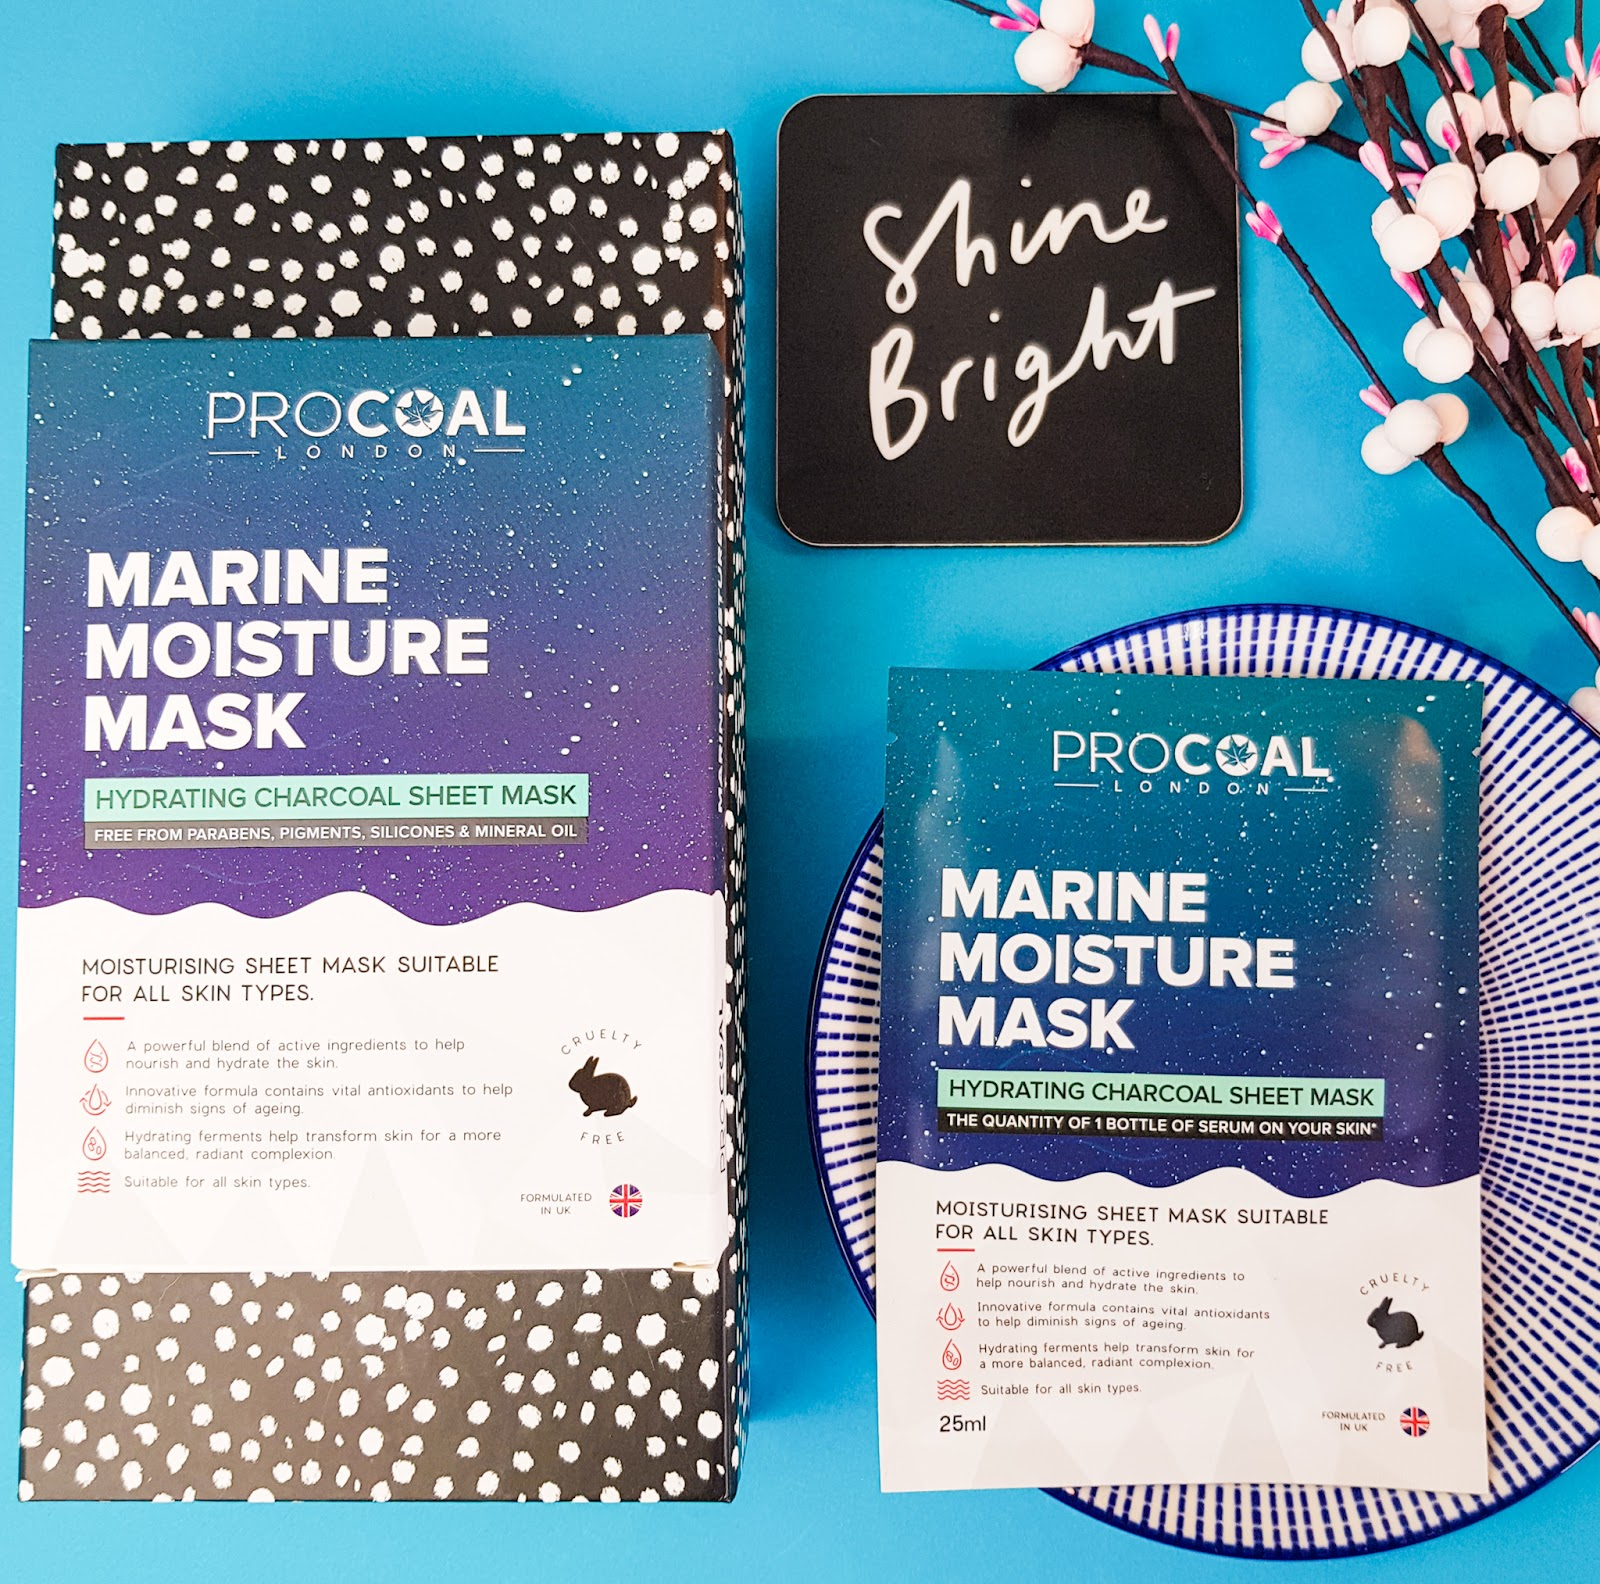 Procoal London Marine Moisture Mask